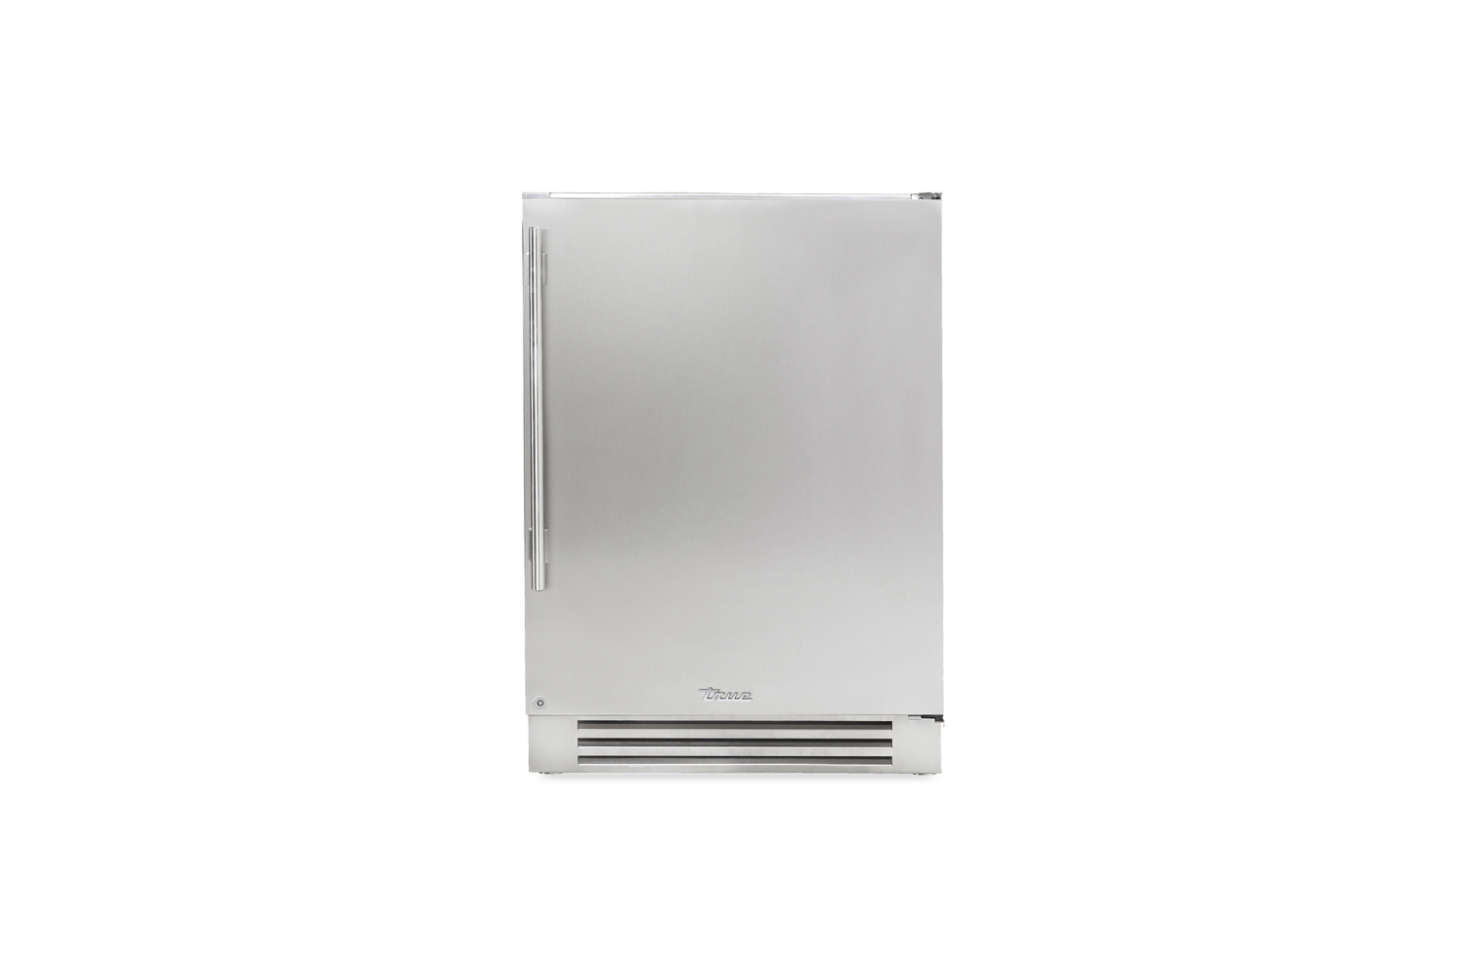 The True Undercounter -Inch Refrigerator with a solid stainless steel solid door is available through True Residential dealers. For more, see our postCustomizable Commercial-Style Refrigerators from True Residential.